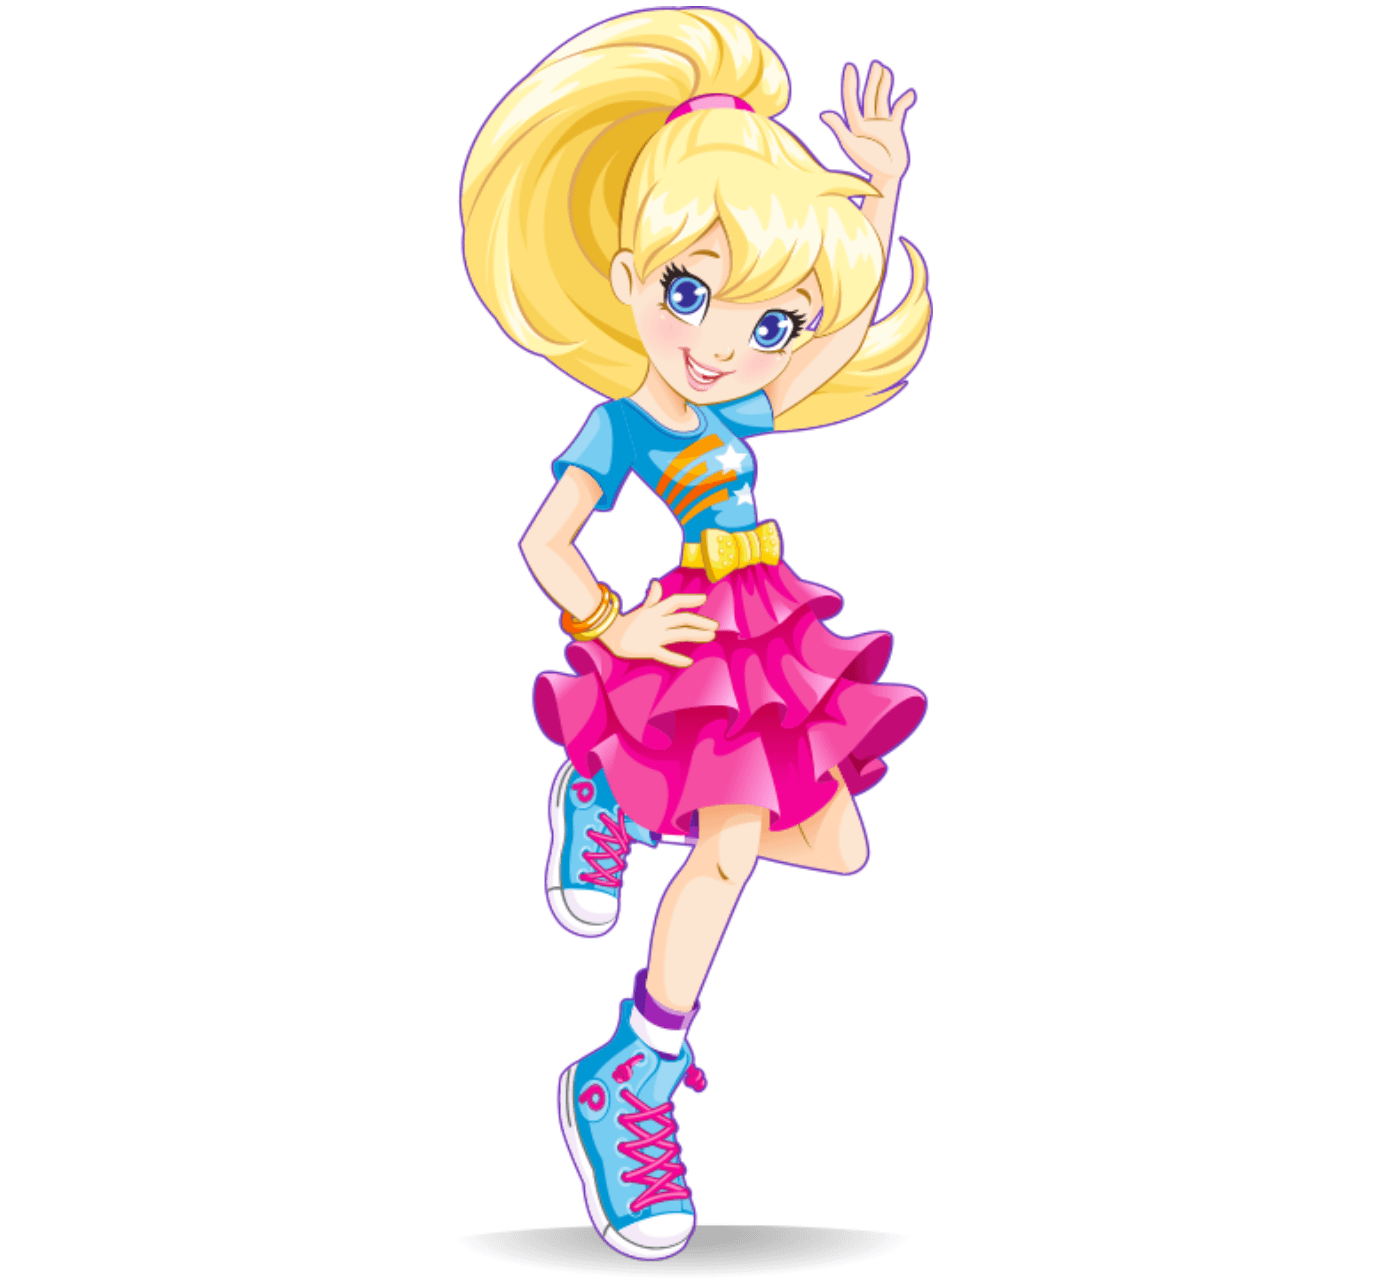 Polly pocket png clipart images gallery for free download.